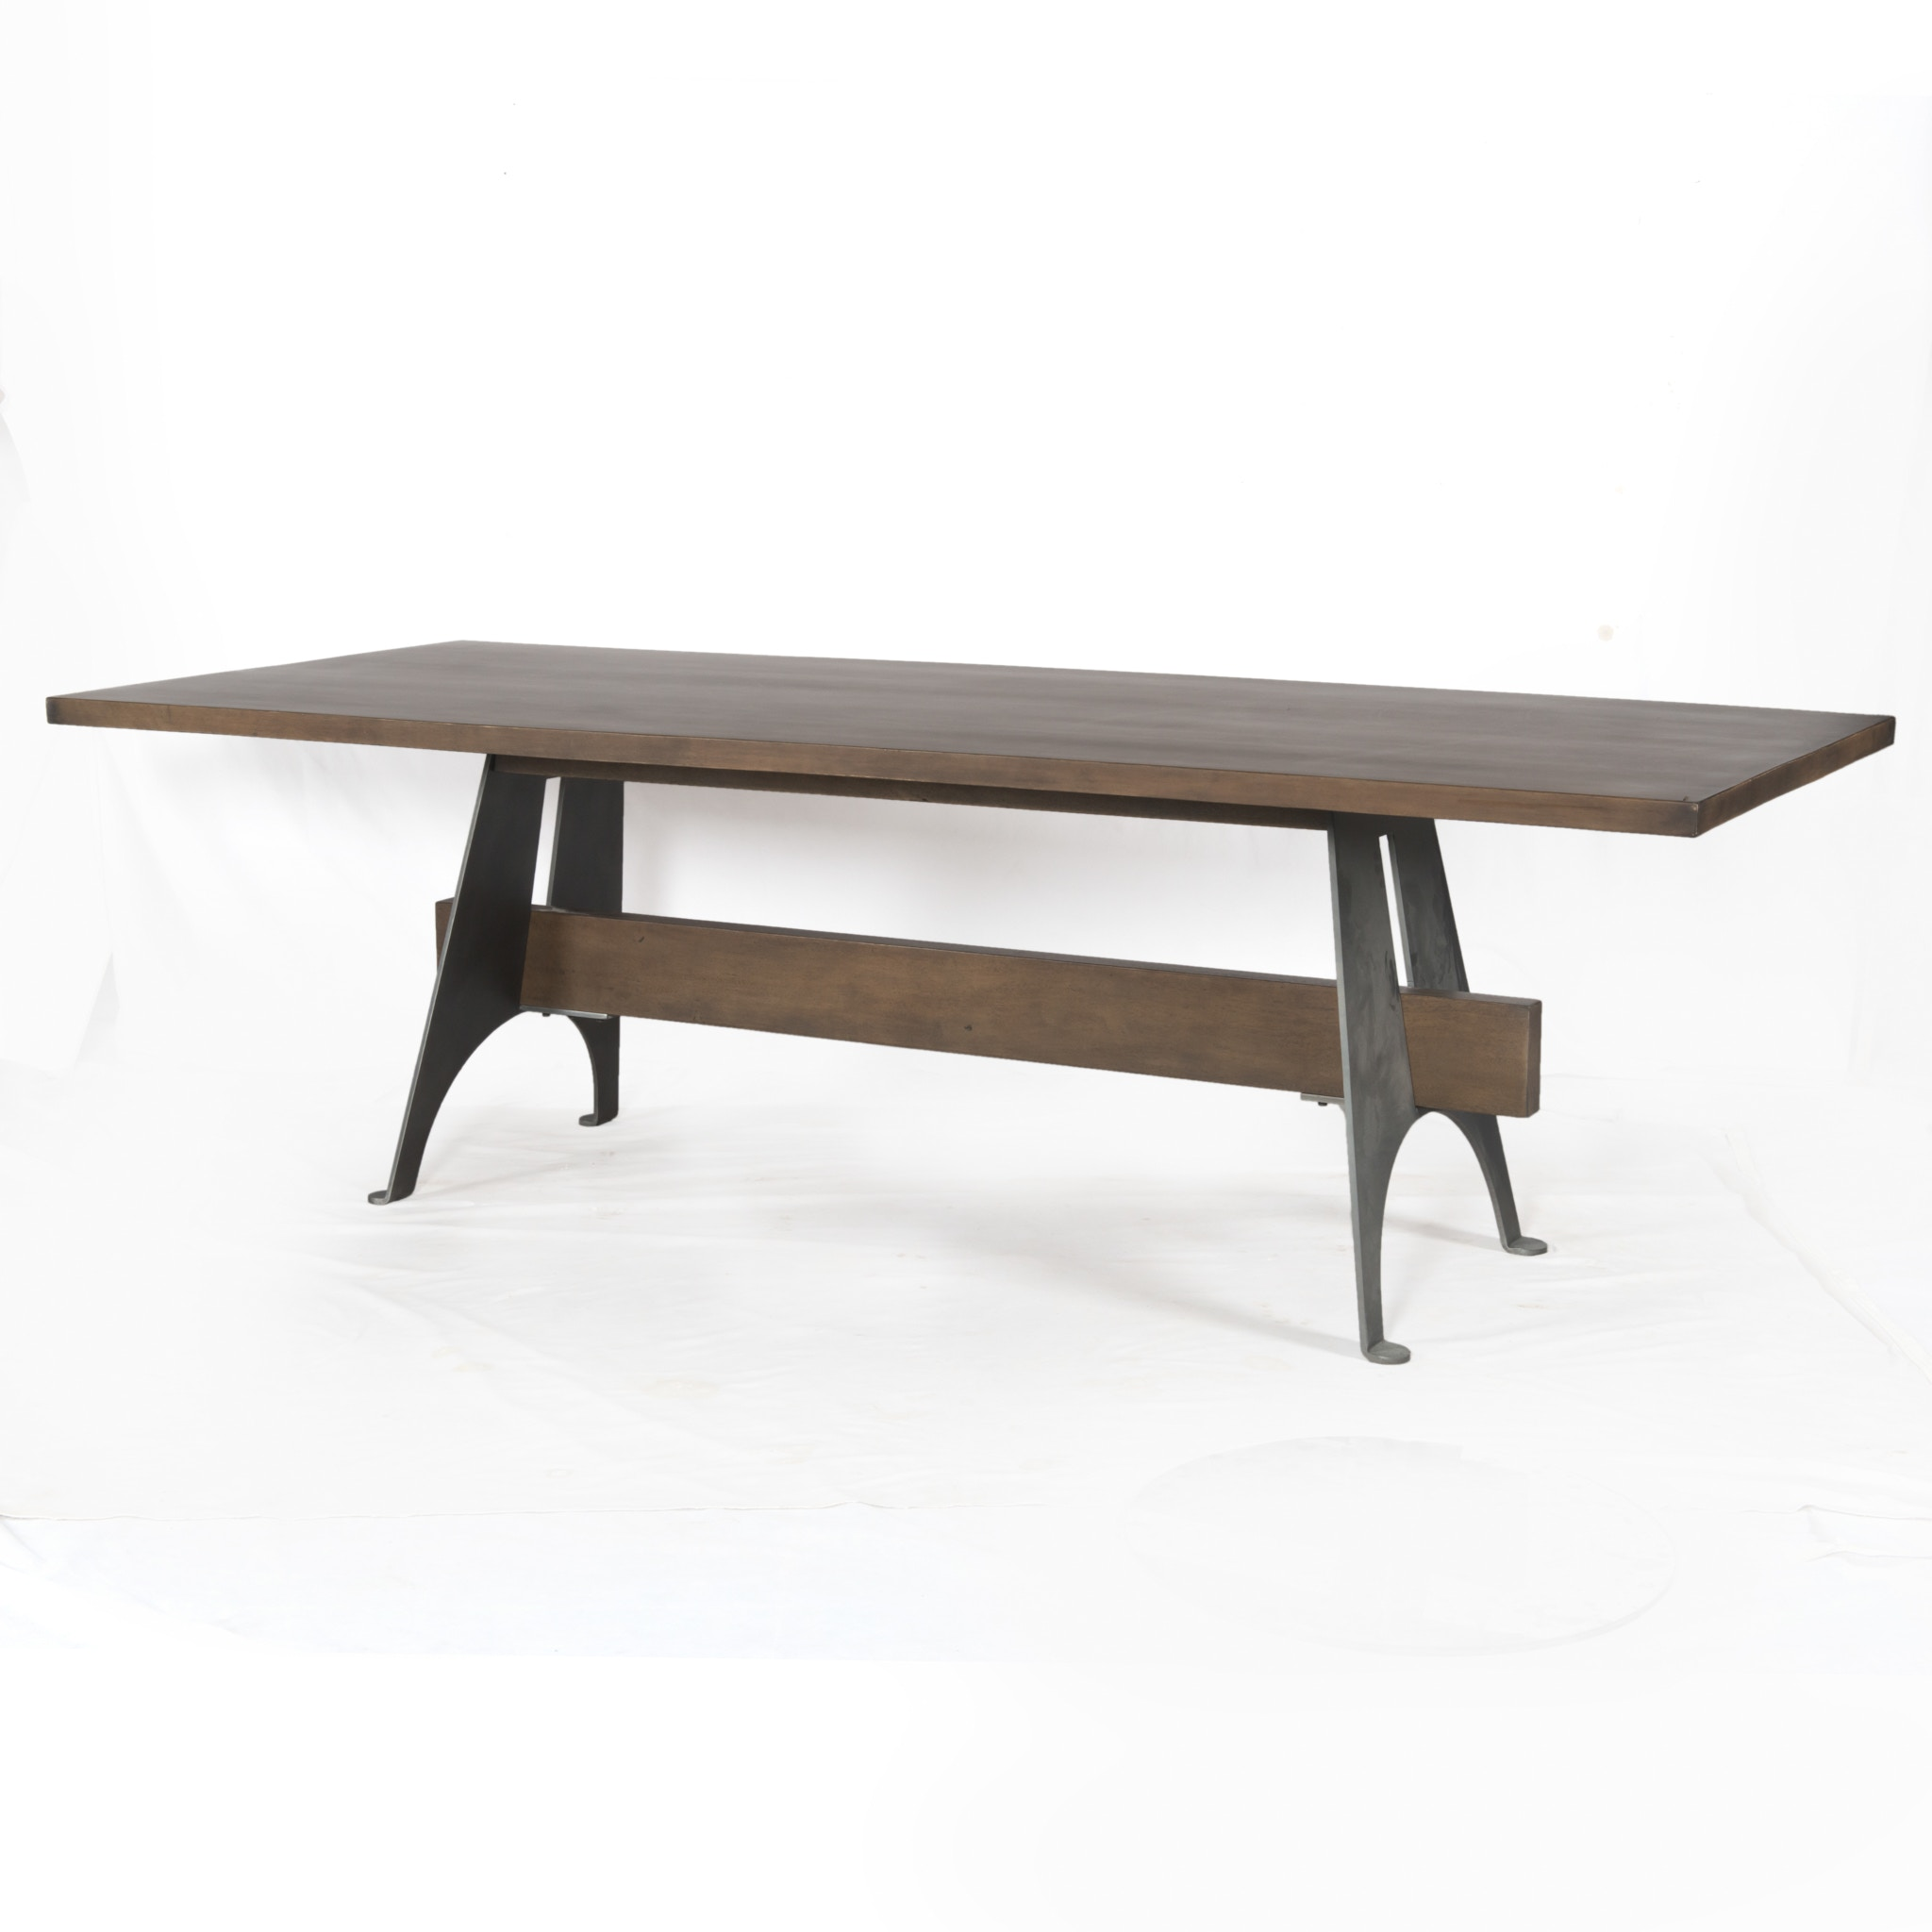 Four Hands Furniture ISD 0165 Dining Room MANGO WOOD METAL DINING